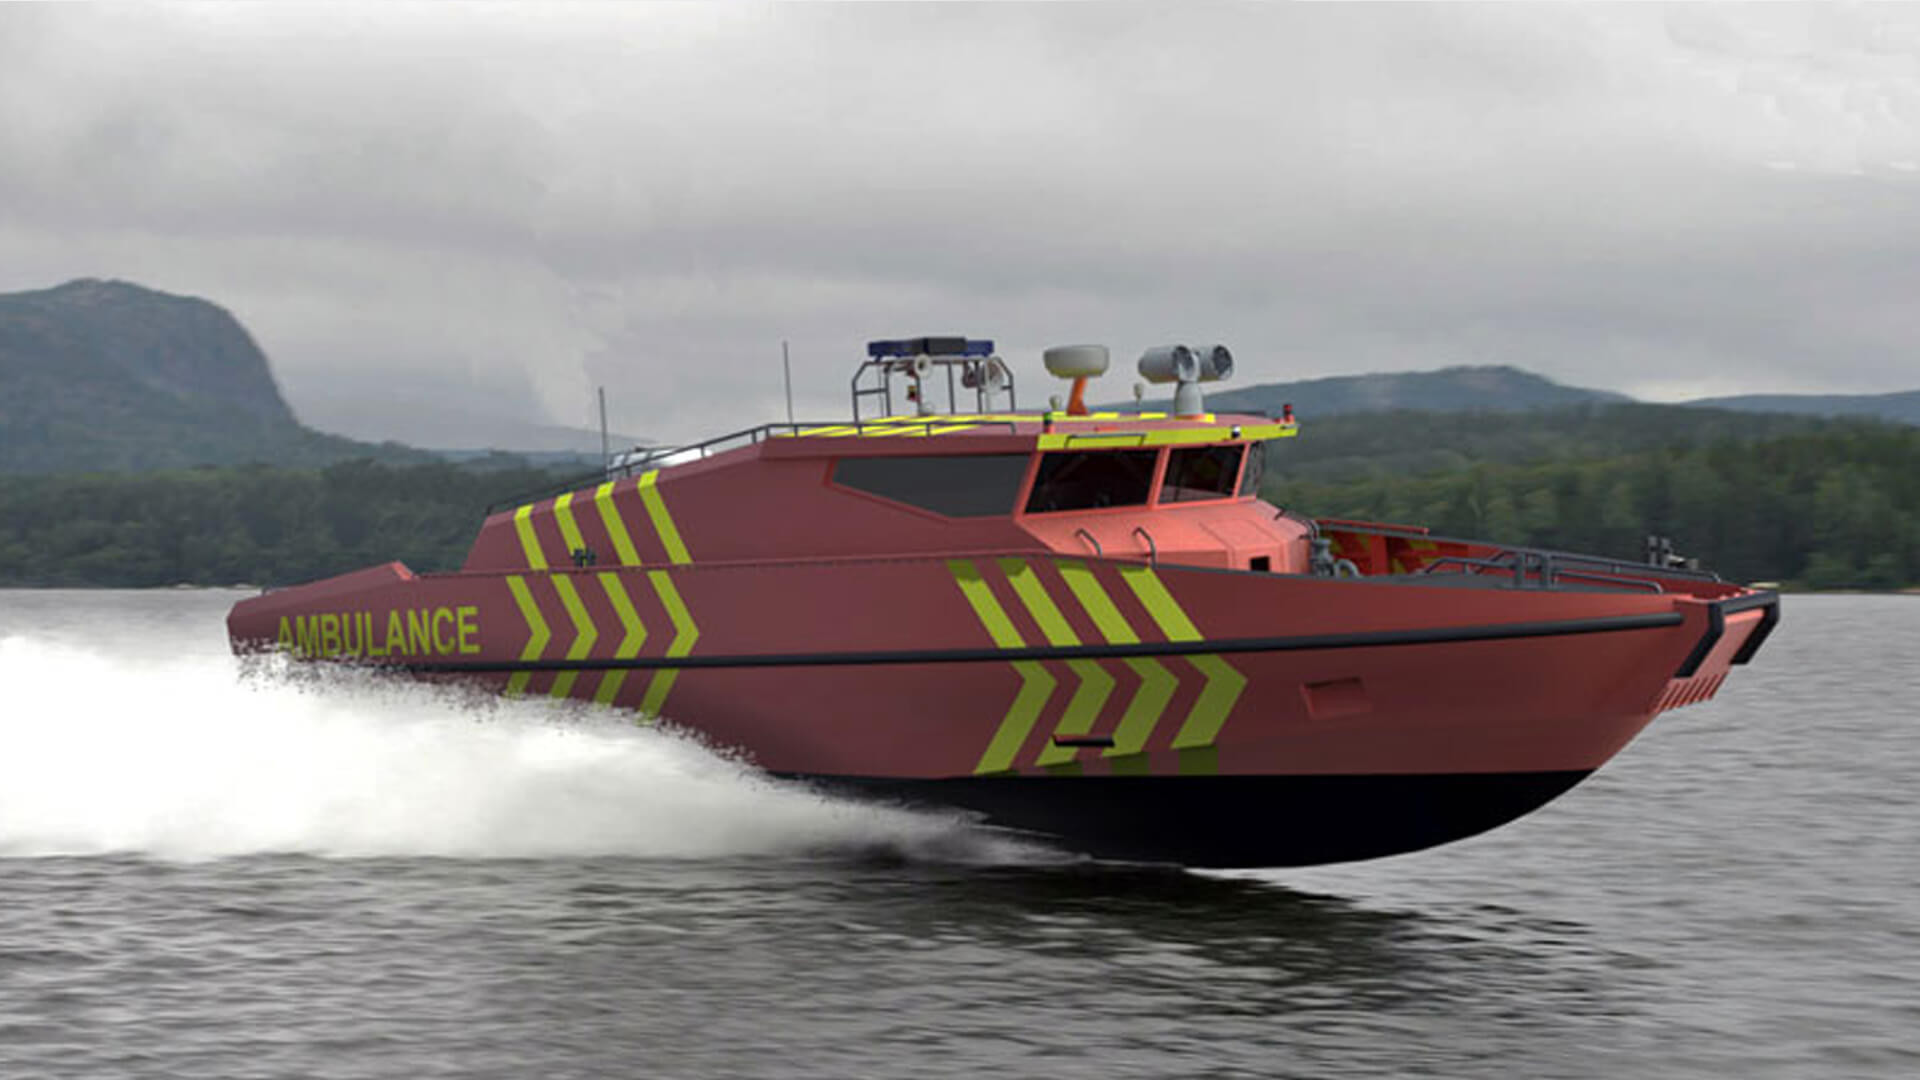 images/vessels/03-utility-support-craft/01-sar-ambulance-boats/03-ares-55-ambulance/01.jpg